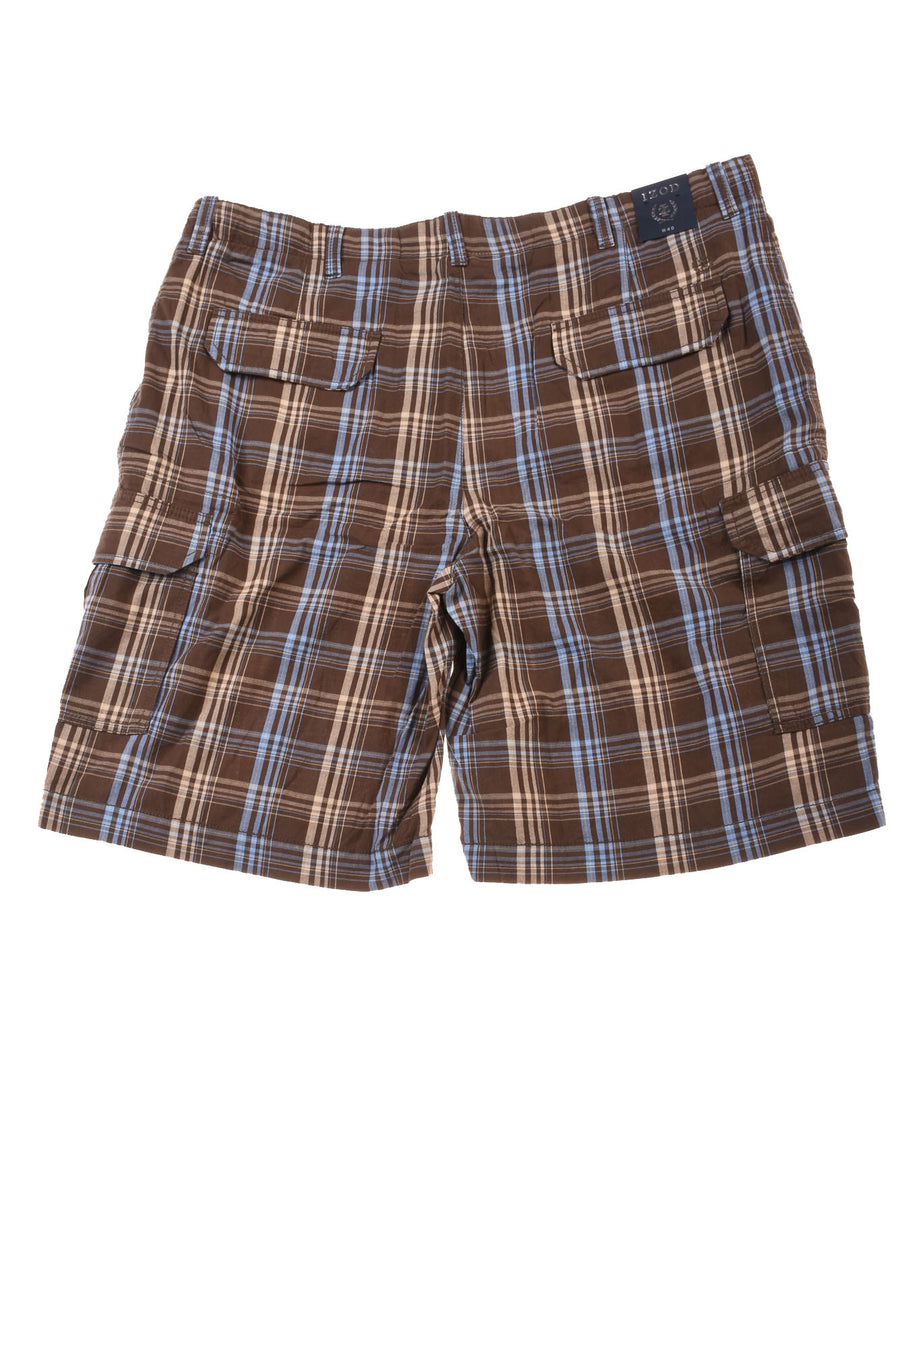 NEW Izod Men's Shorts 40 Brown & Blue